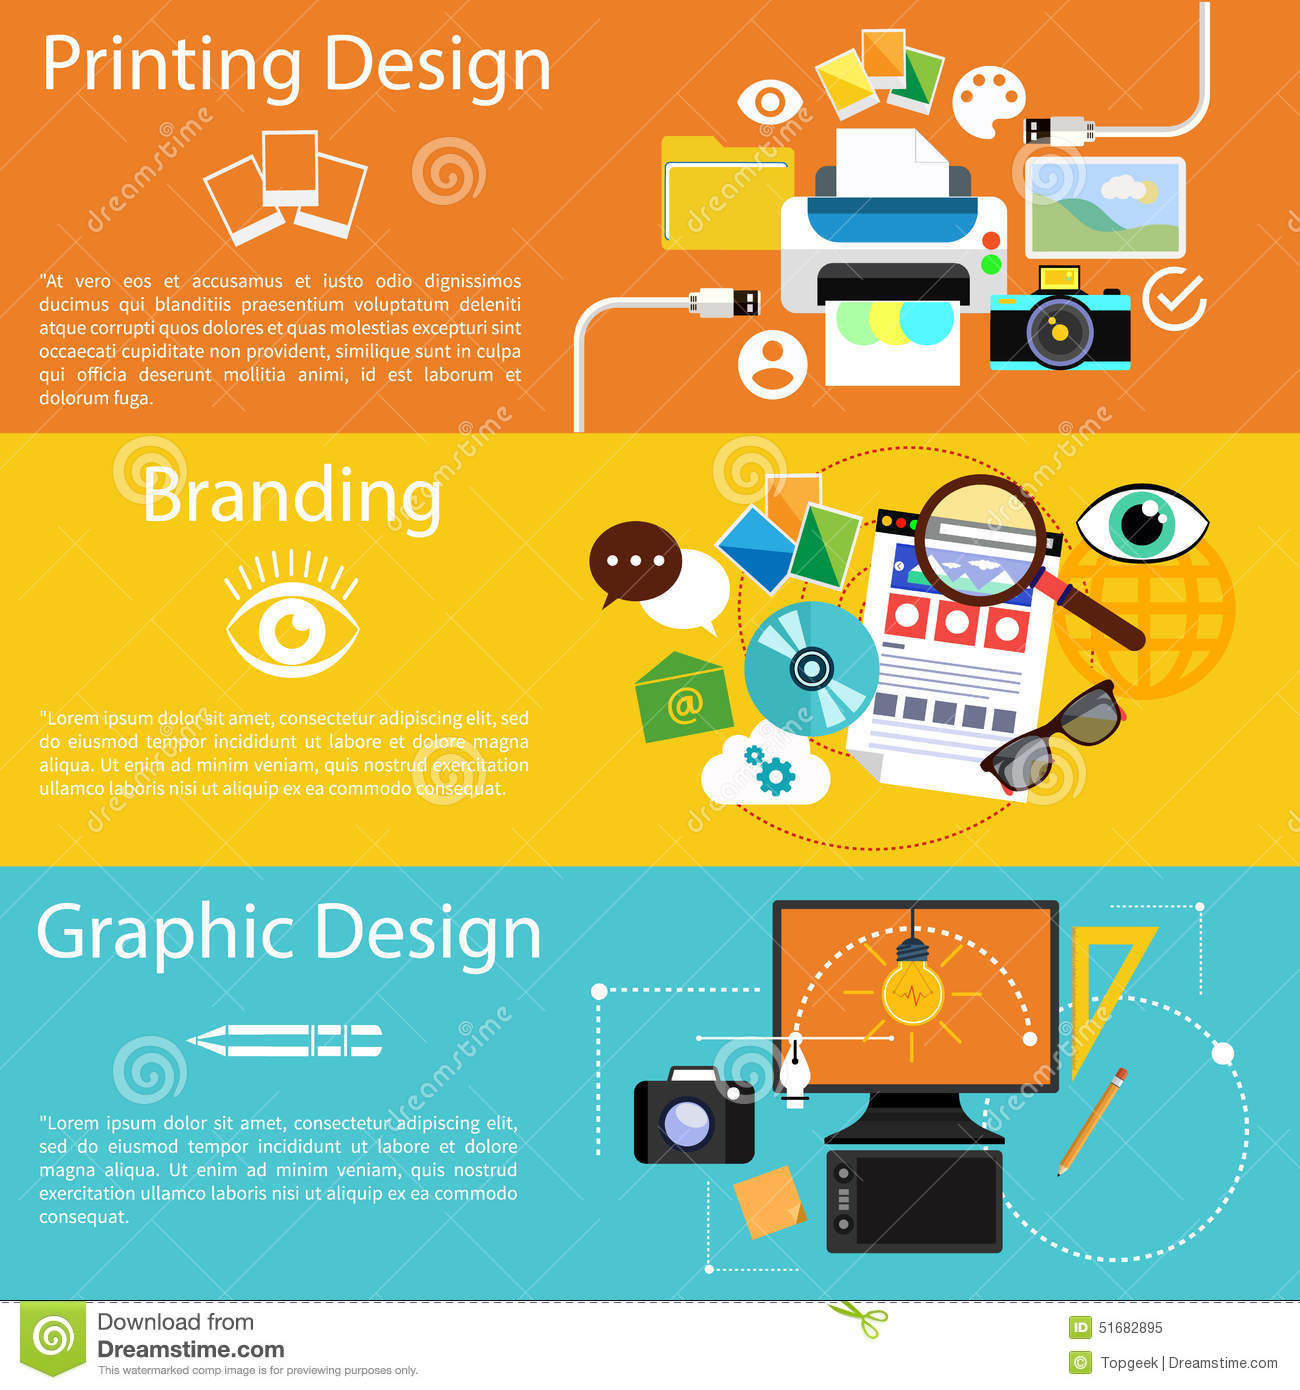 What Education Is Required To Be A Web Designer